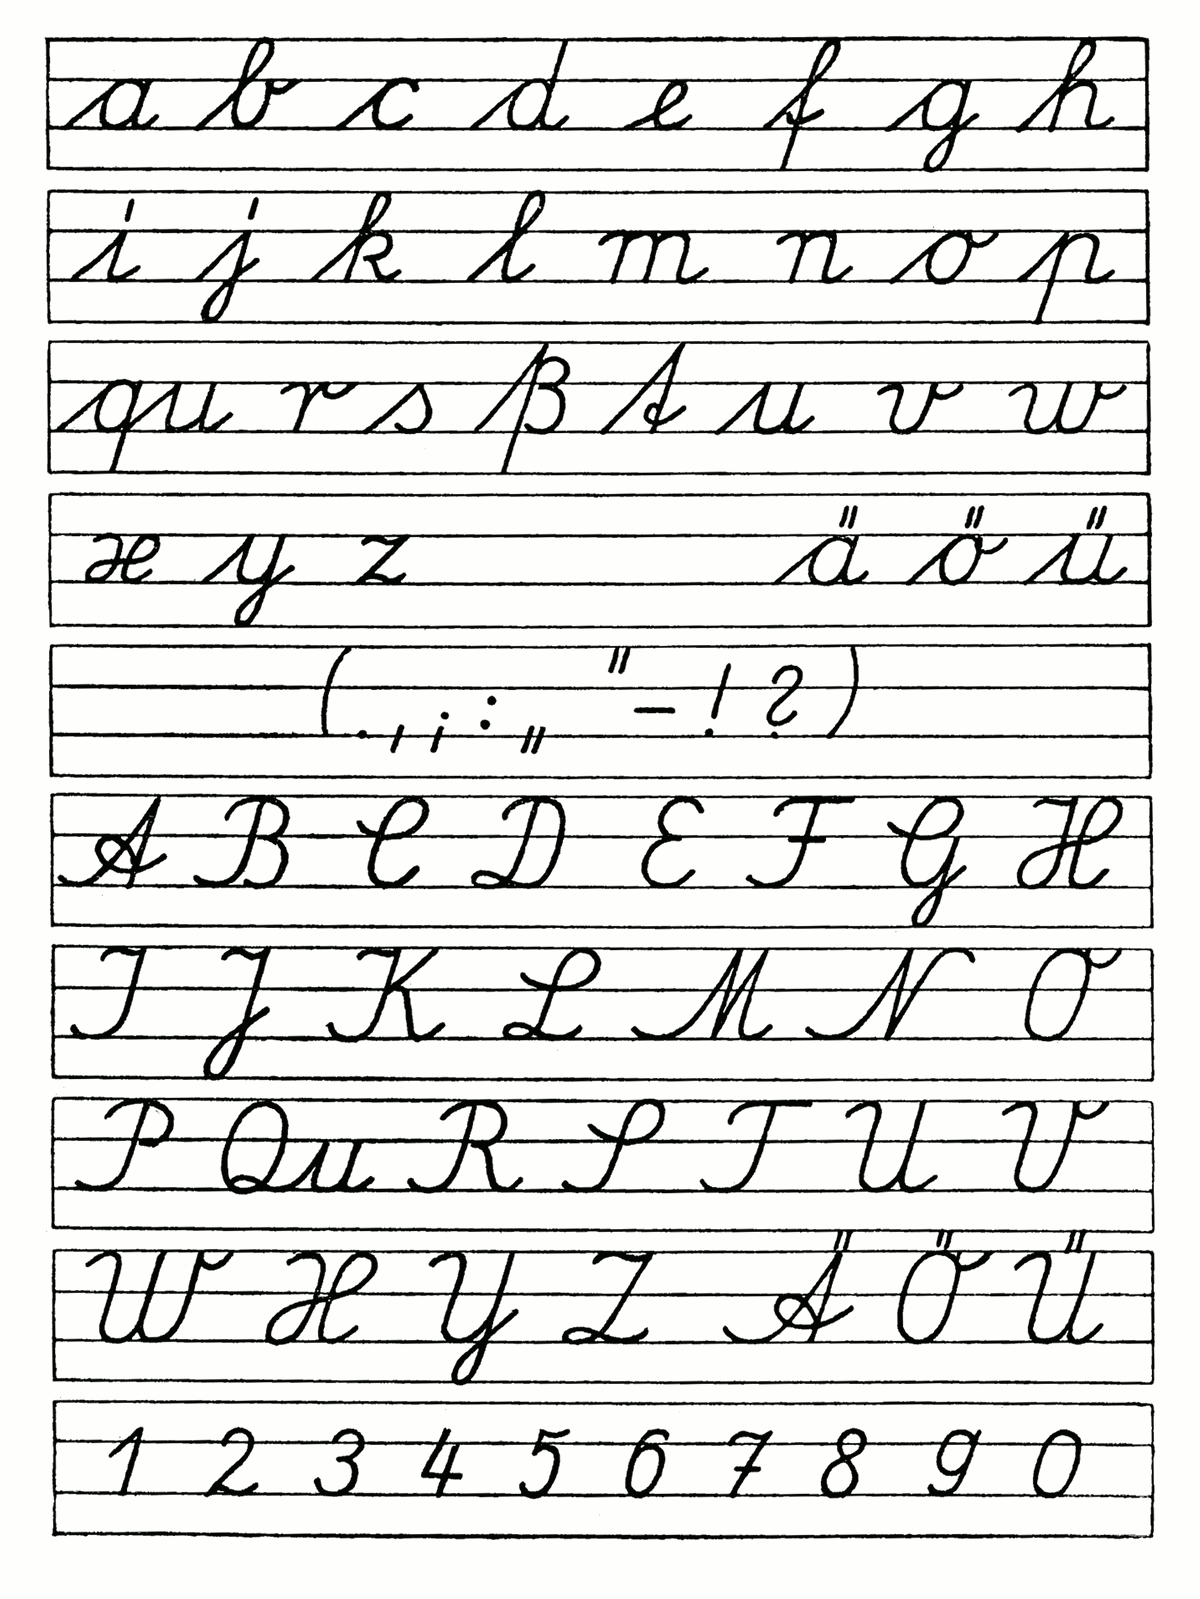 Wikipedia Gdr Handwriting - Link To Discussion Of Different